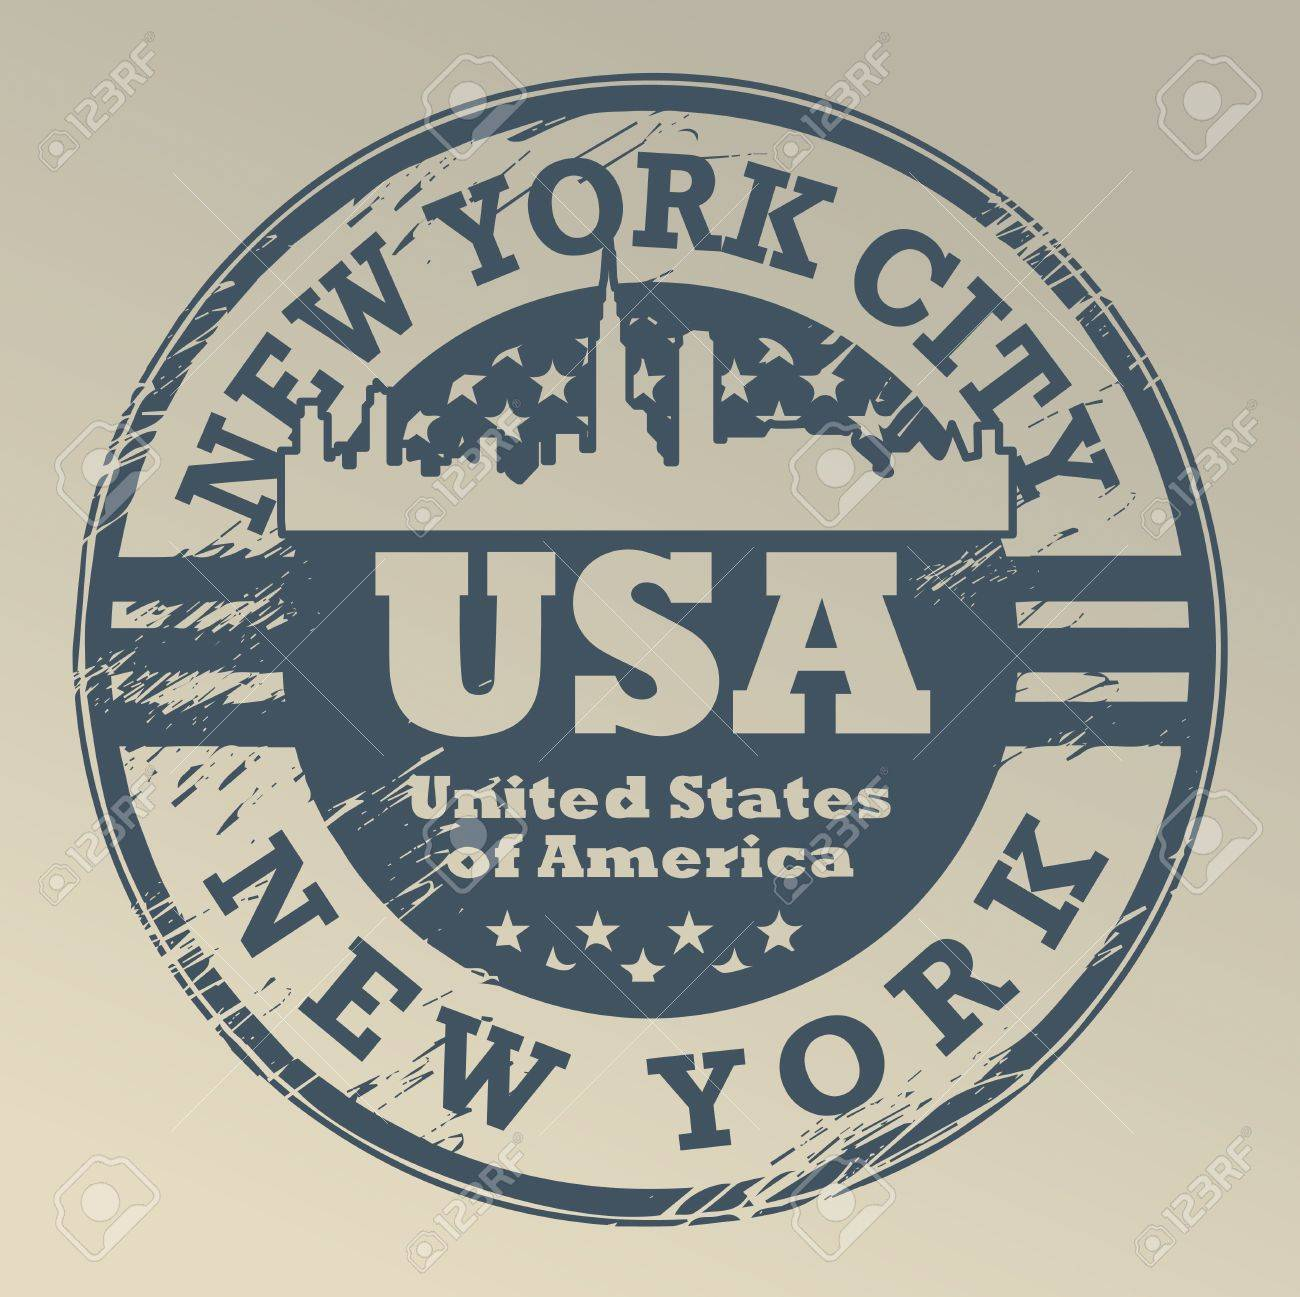 Grunge rubber stamp with name of New York, New York City Stock Vector - 18346135